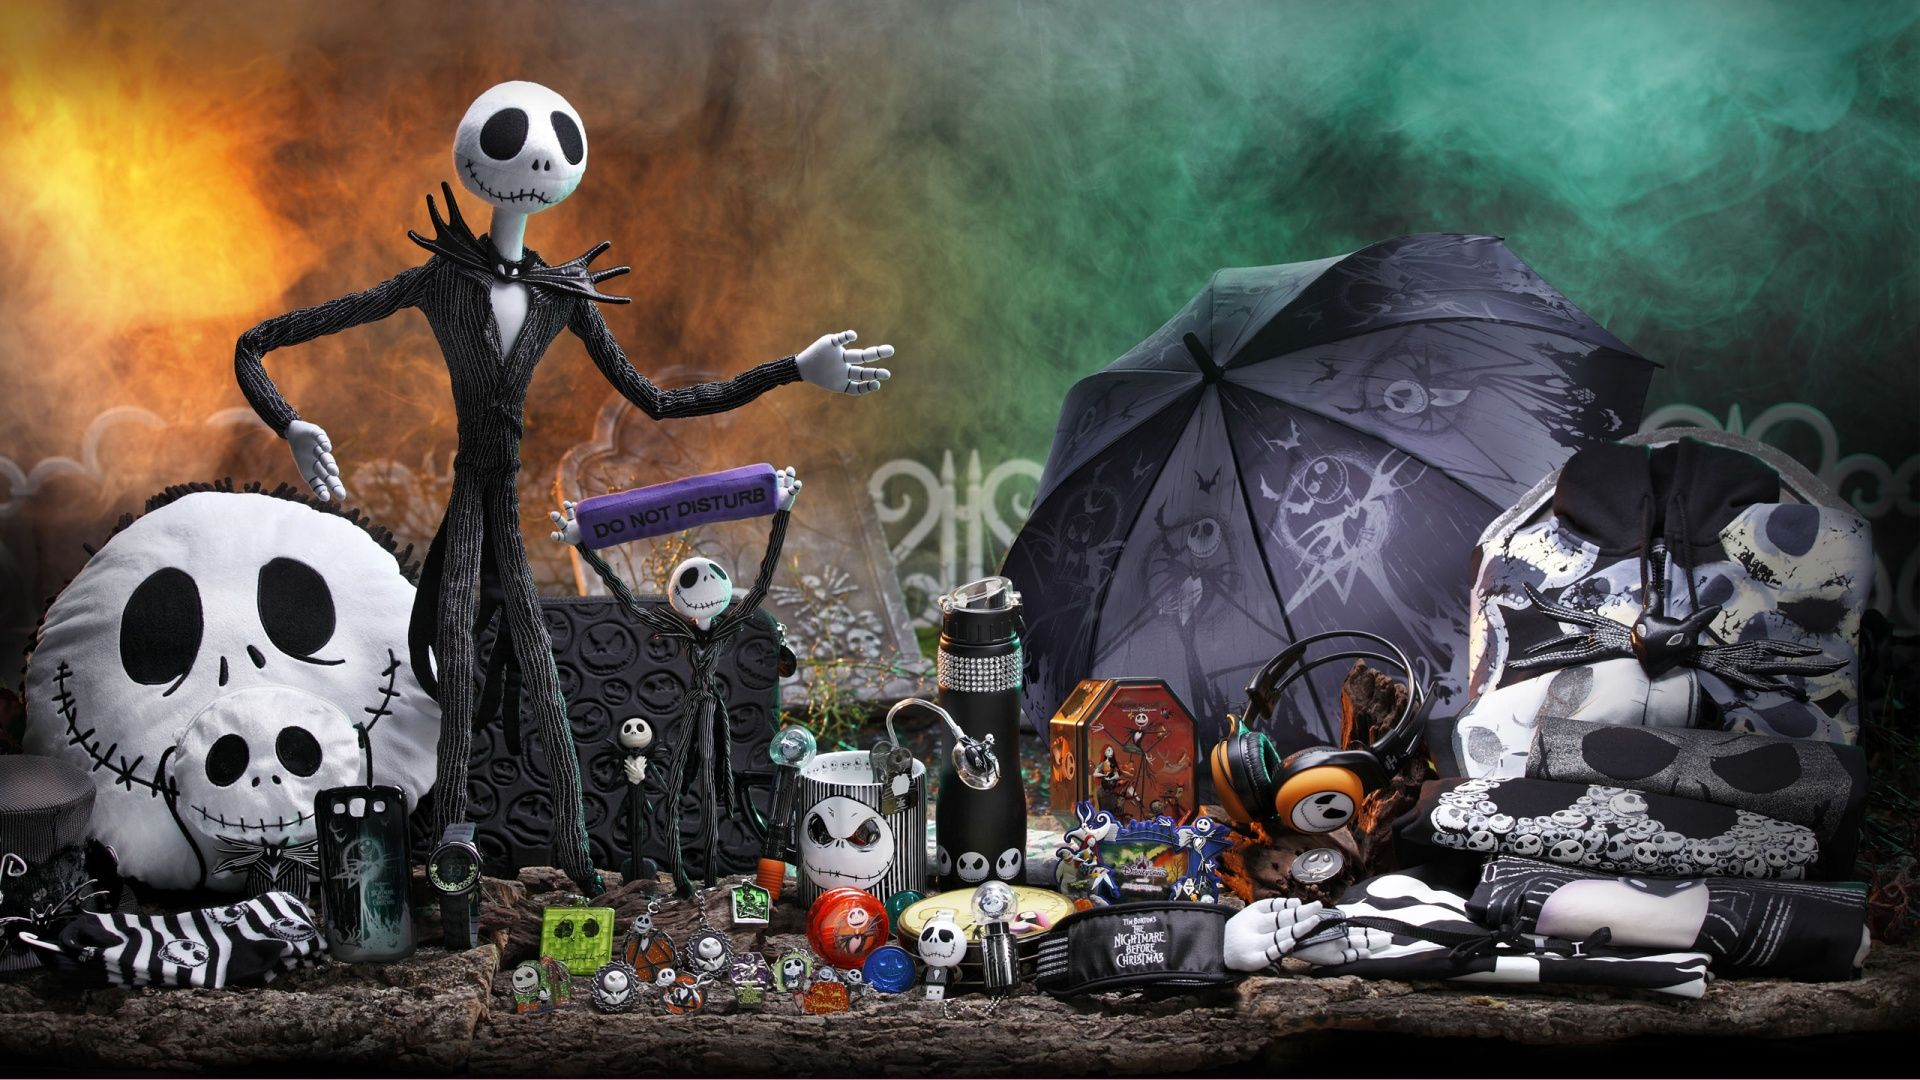 Nightmare Before Christmas Wallpaper 34 Jpg 1920 10 Nightmare